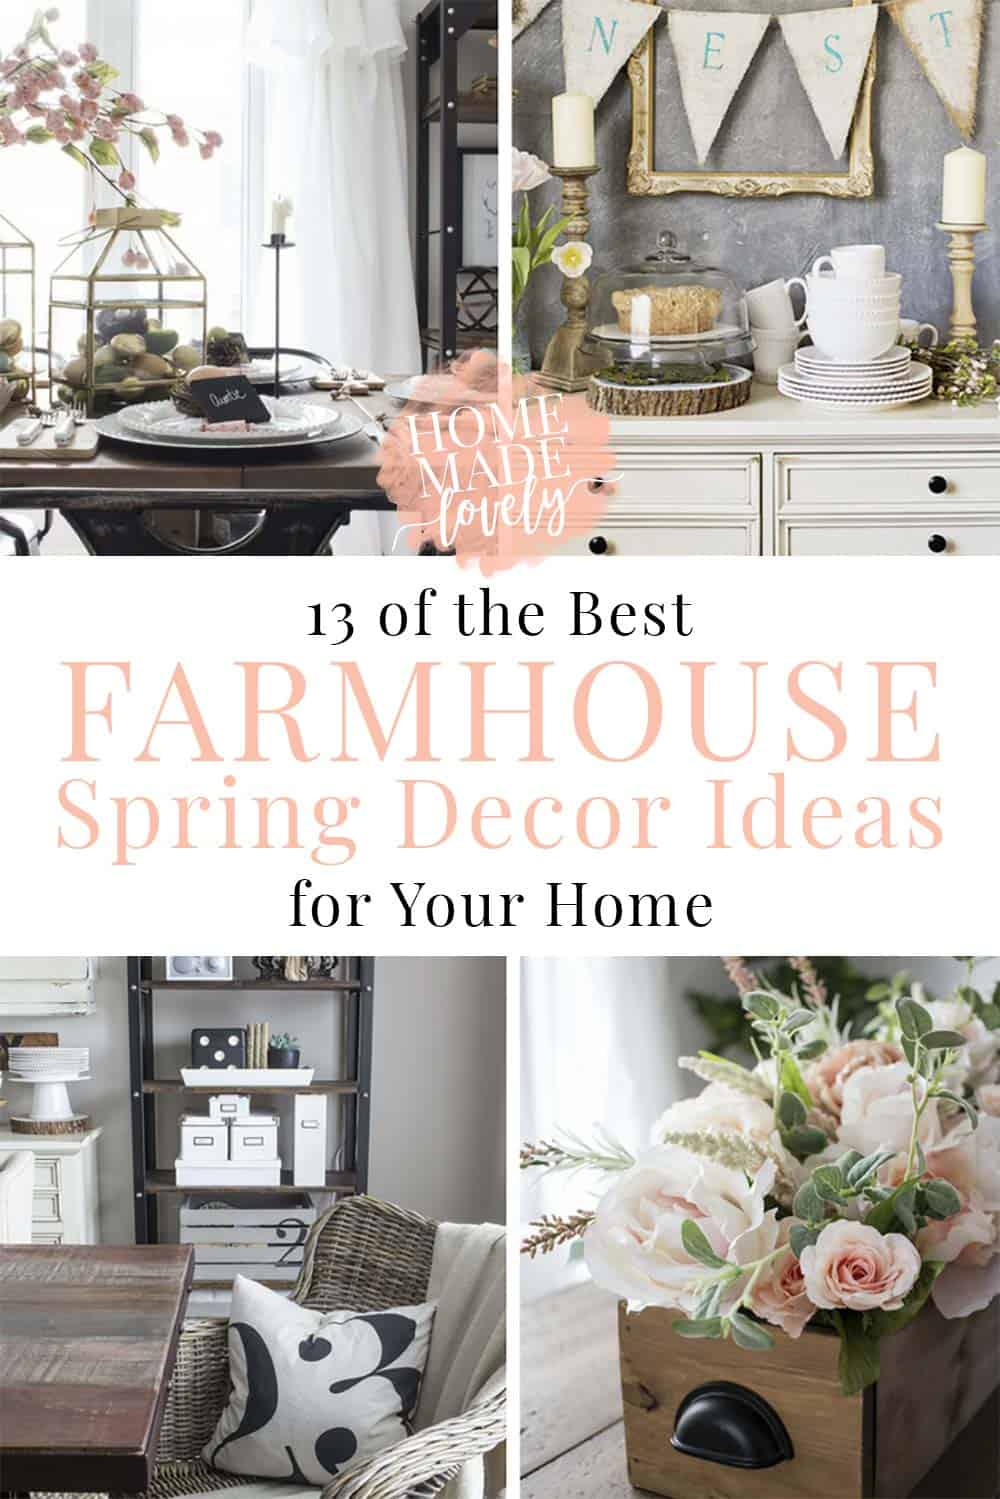 Sometimes it can be hard to find pretty farmhouse decor ideas. Here are 13 of the best farmhouse Spring decor ideas for your home!